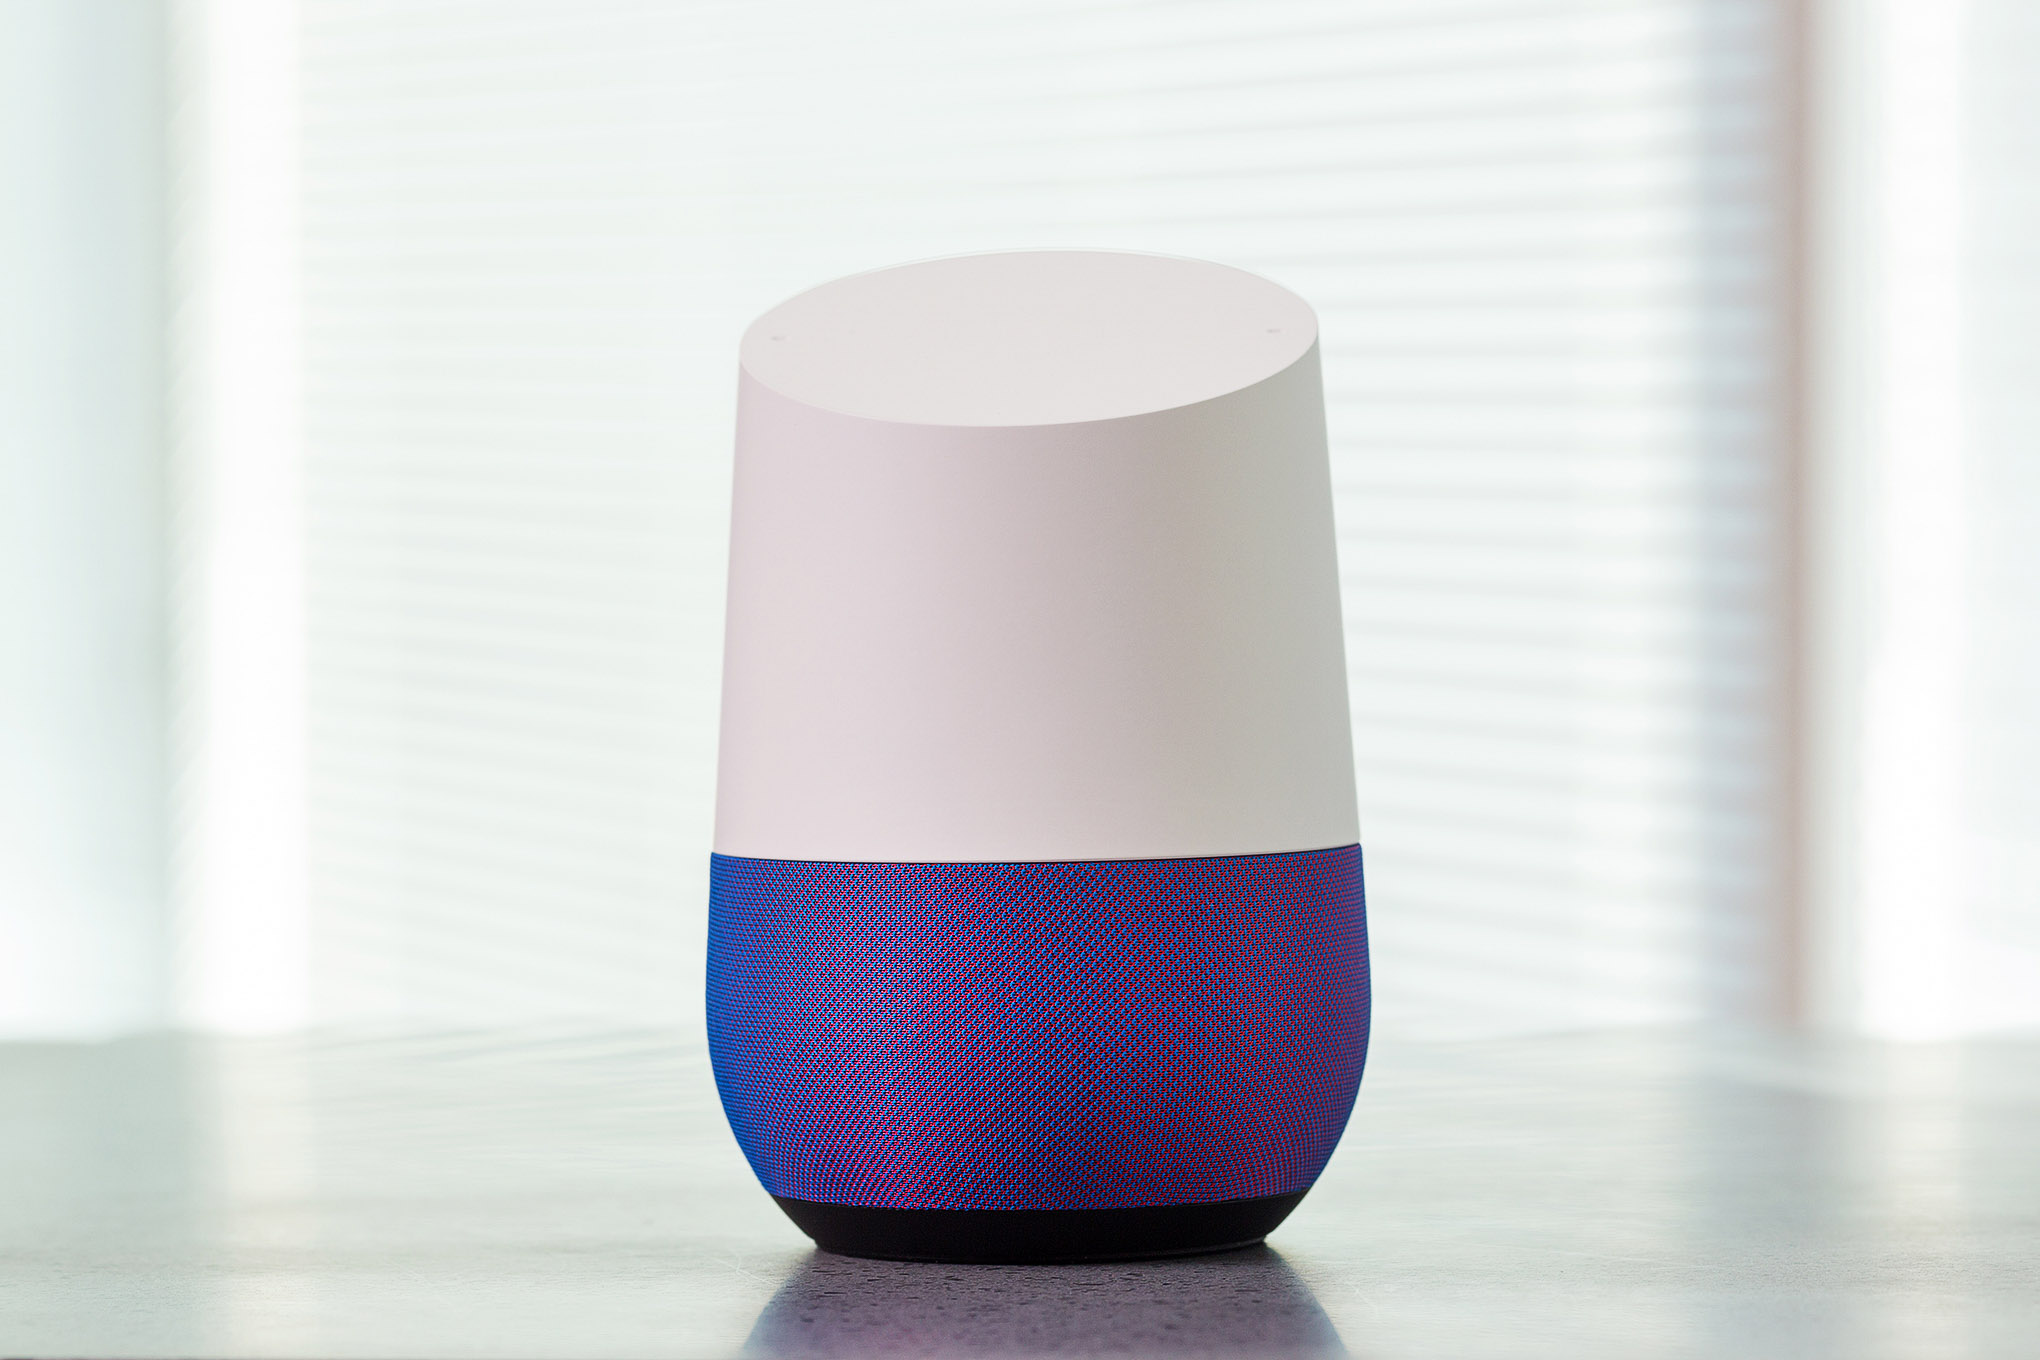 Google Home Can Now Make Phone Calls In The Us And Canada